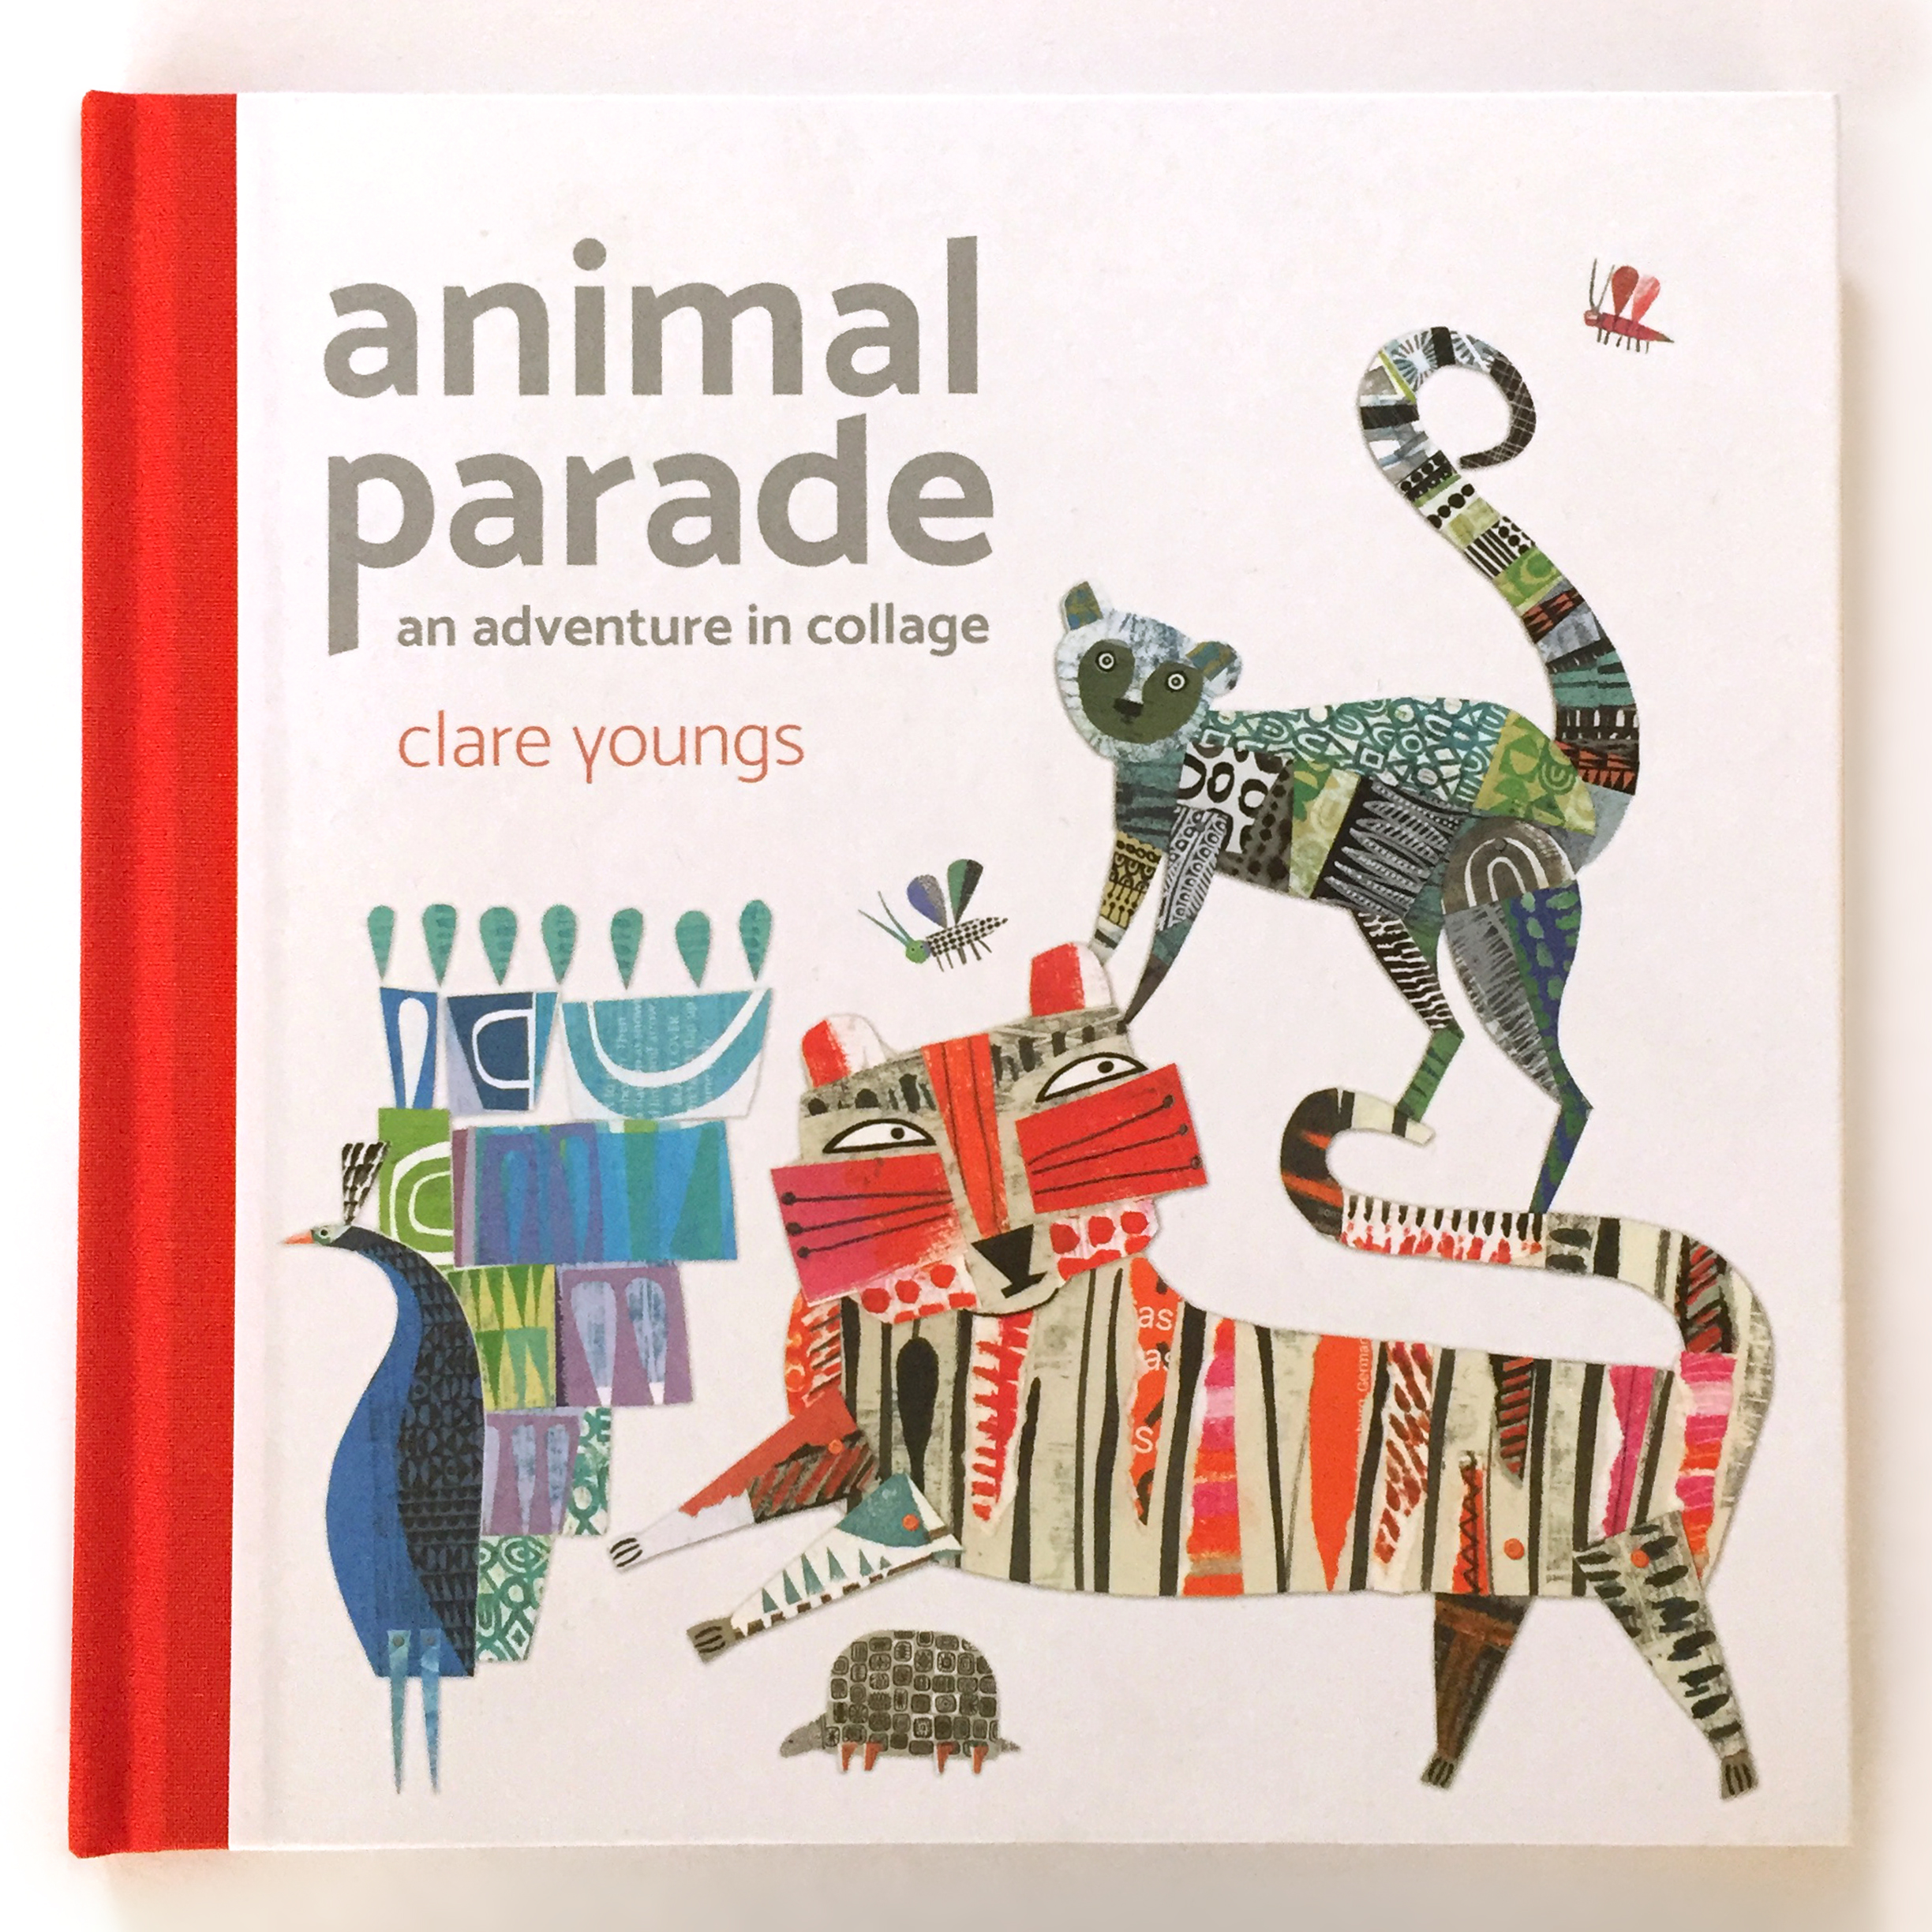 NEW BOOK OUT NOW. to order, follow the link  http://designfortoday.co.uk/shop/animal-parade-special-edition-zp3af